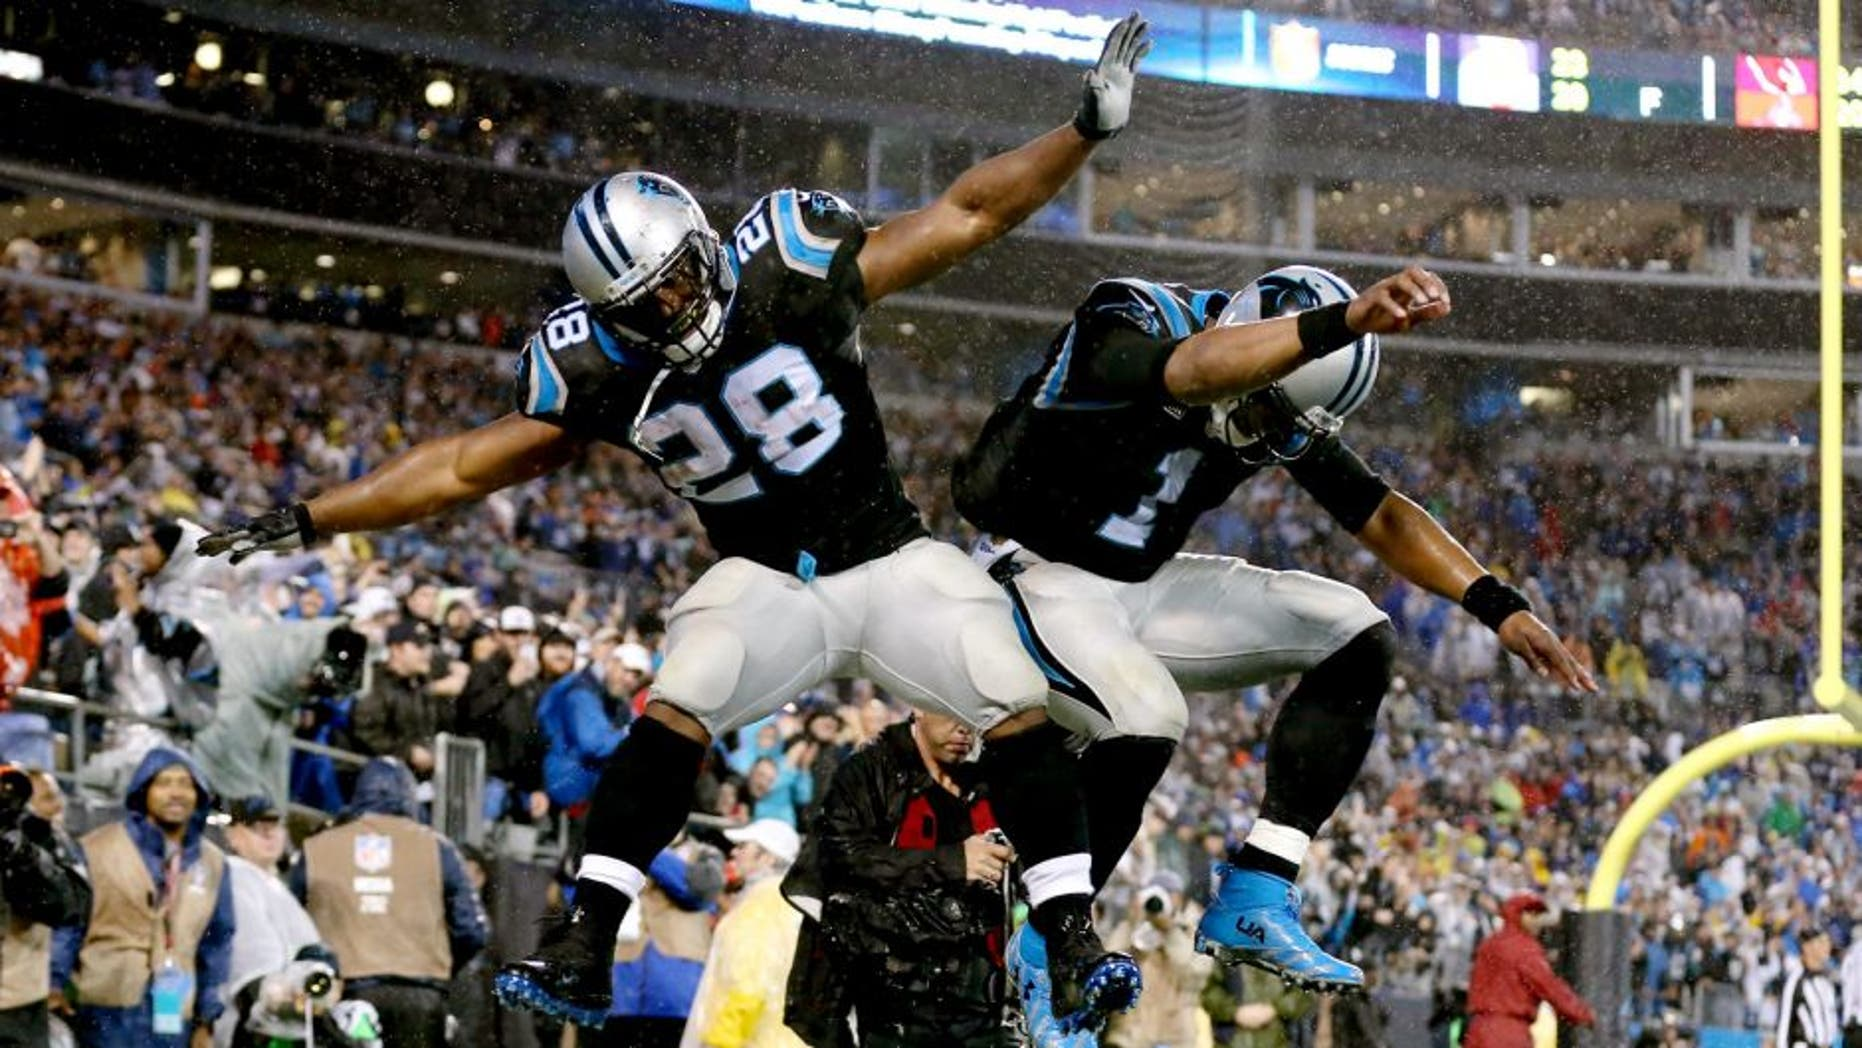 CHARLOTTE, NC - NOVEMBER 02: Cam Newton #1 and teammate Jonathan Stewart #28 of the Carolina Panthers celebrate after a touchdown against the Indianapolis Colts in the 1st quarter during their game at Bank of America Stadium on November 2, 2015 in Charlotte, North Carolina. (Photo by Streeter Lecka/Getty Images)